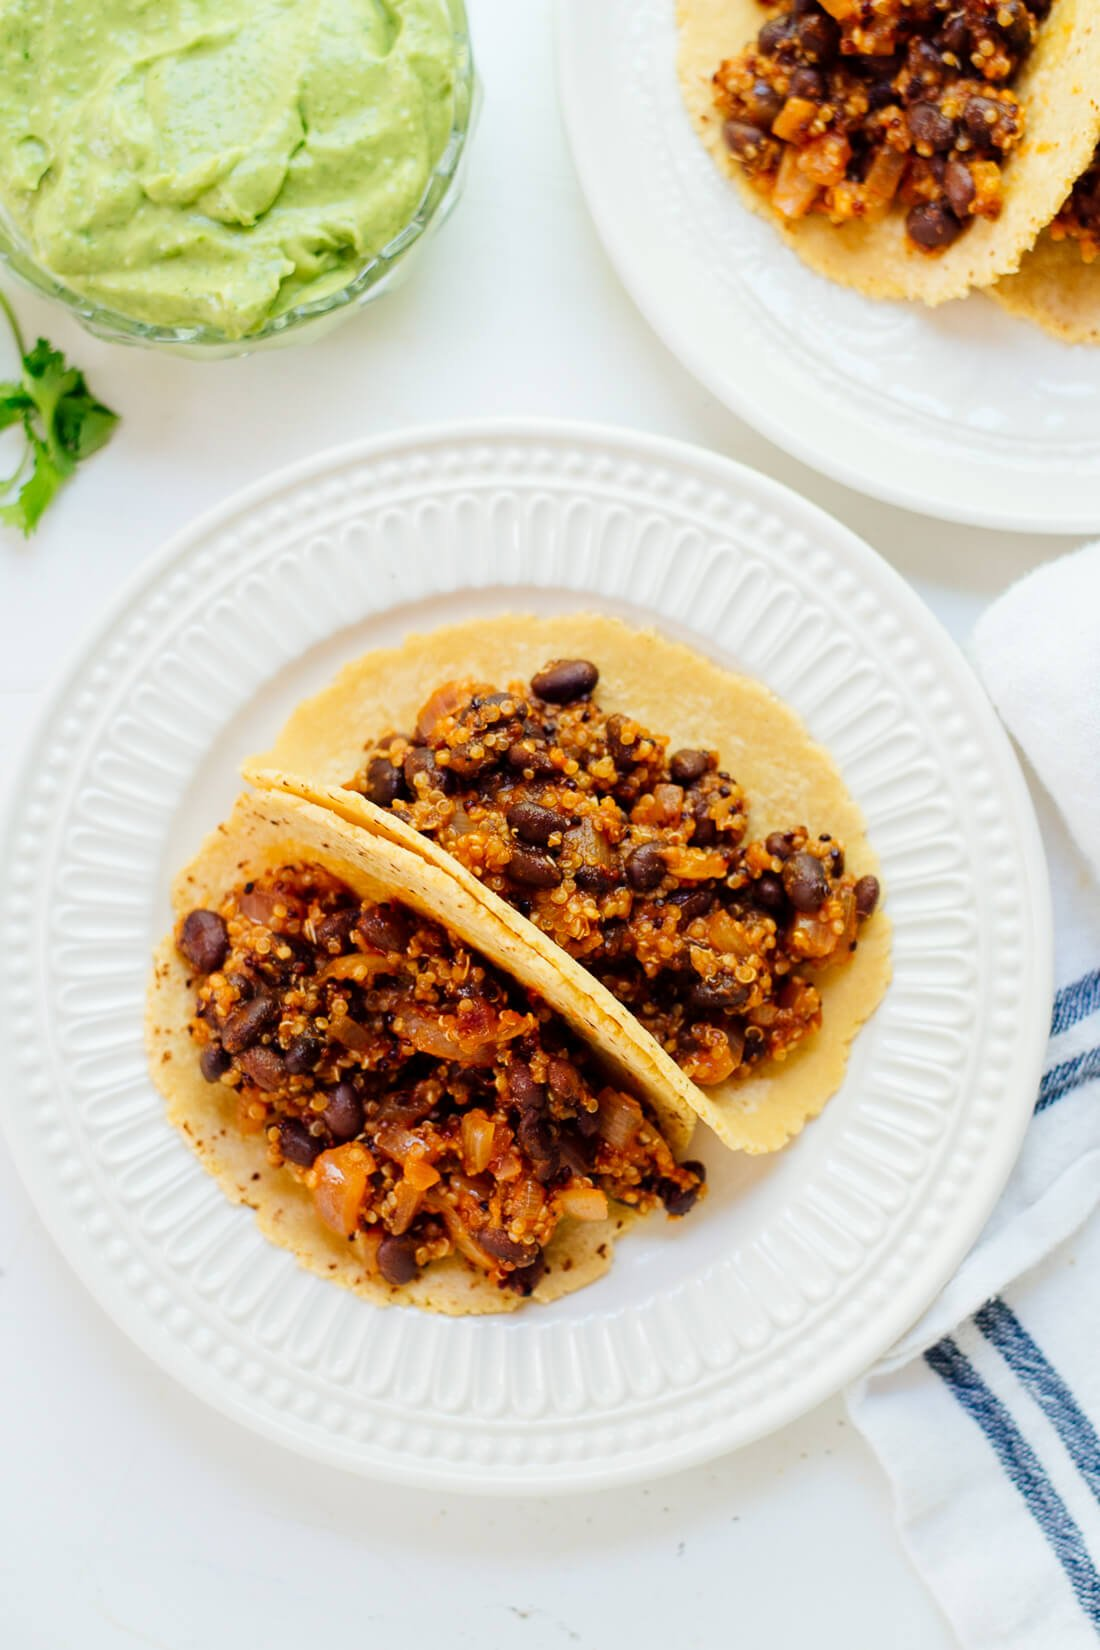 How to make quinoa black bean tacos